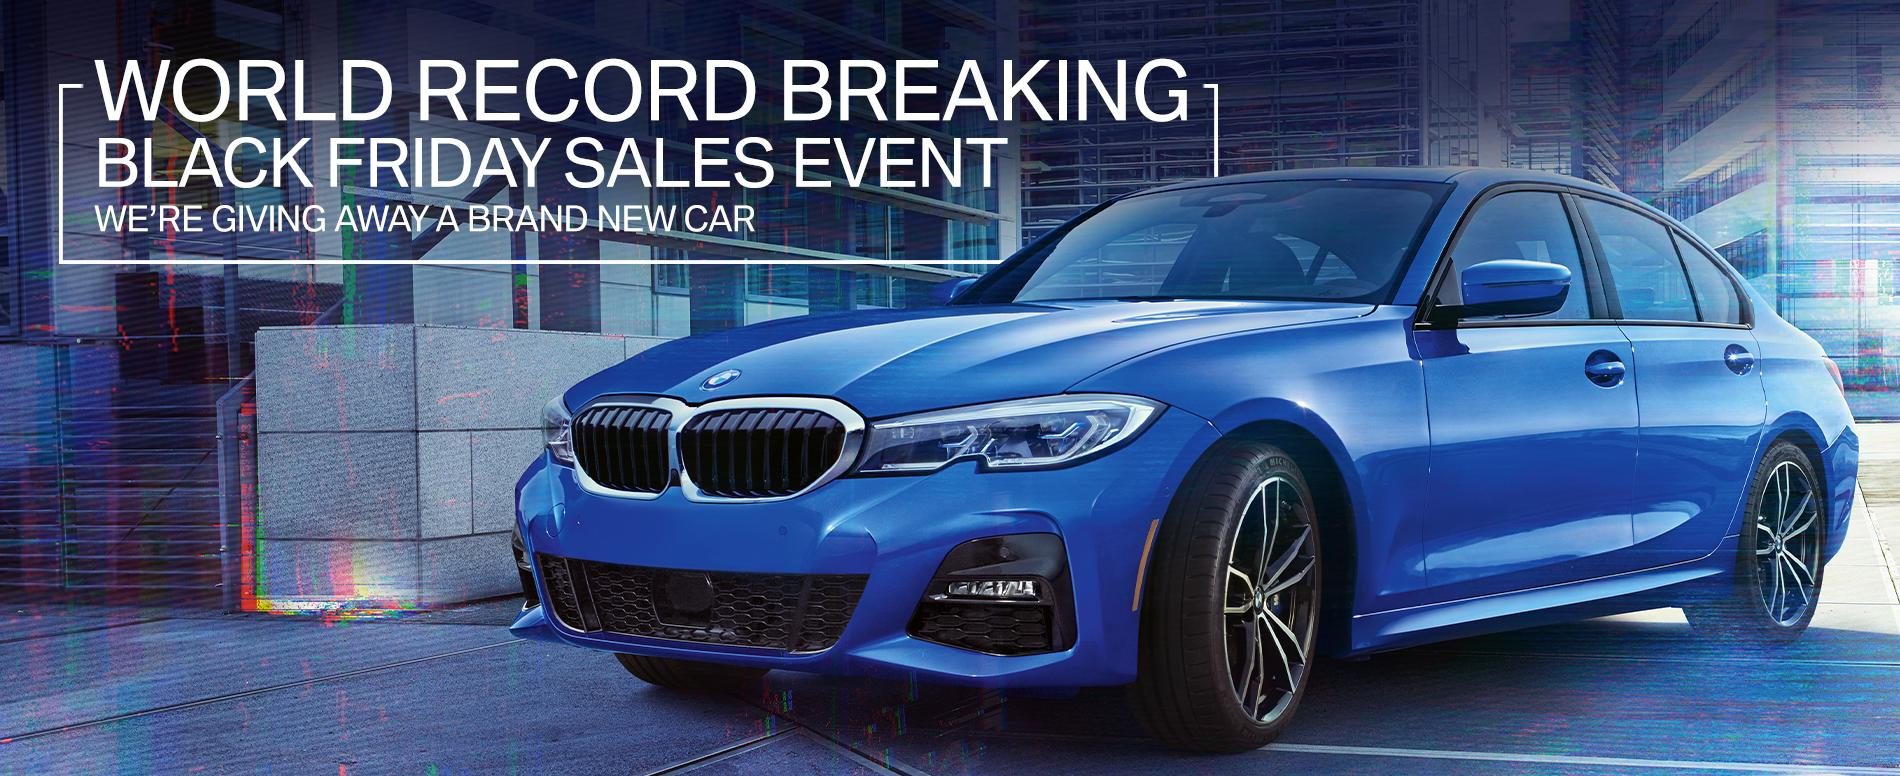 World Record Breaking Black Friday Sales Event